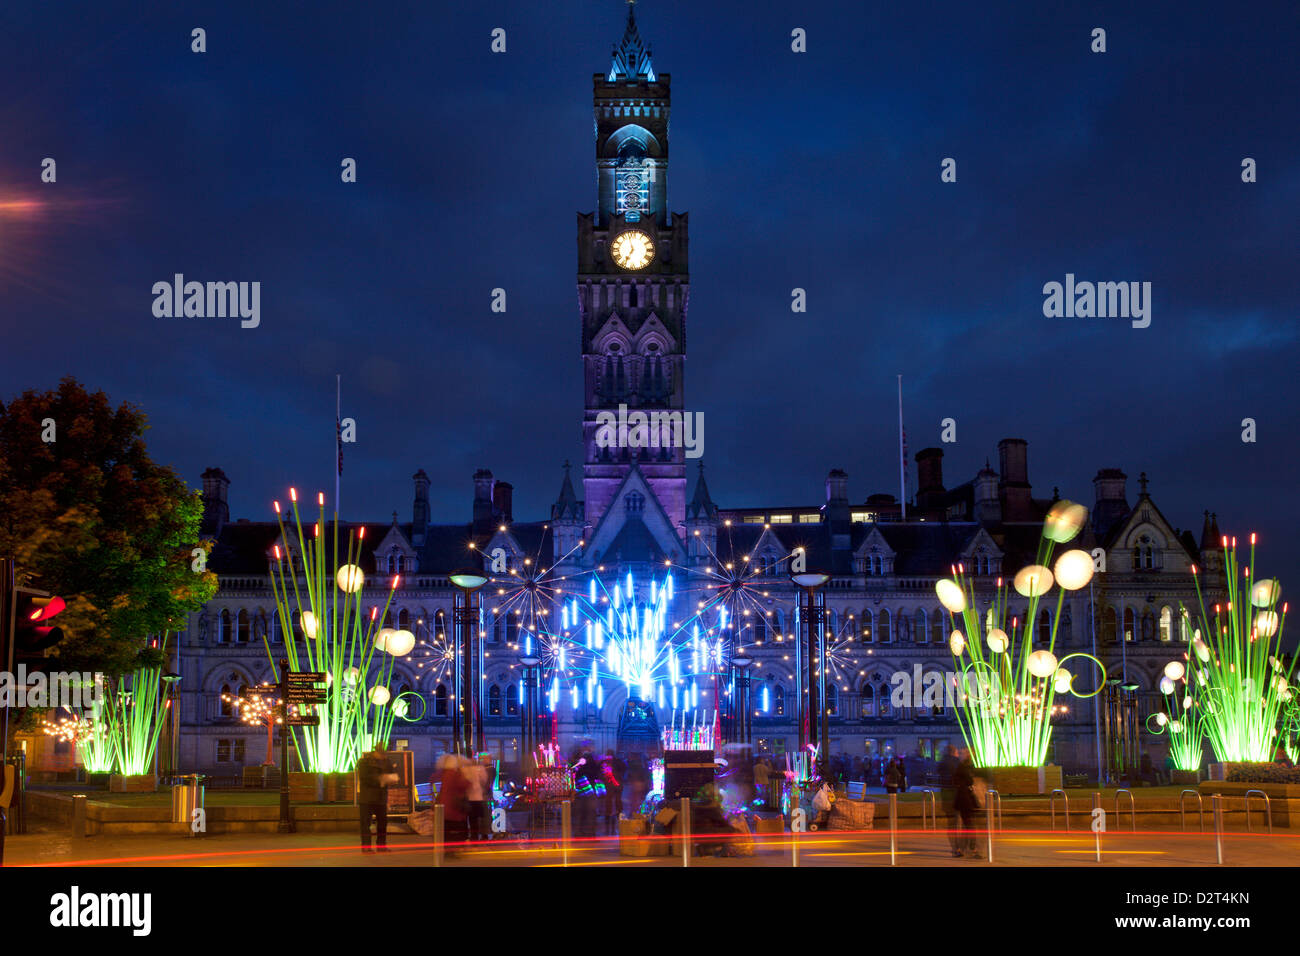 City Hall and Garden of Light Display in Centenary Square, Bradford, West Yorkshire, Yorkshire, England, United - Stock Image